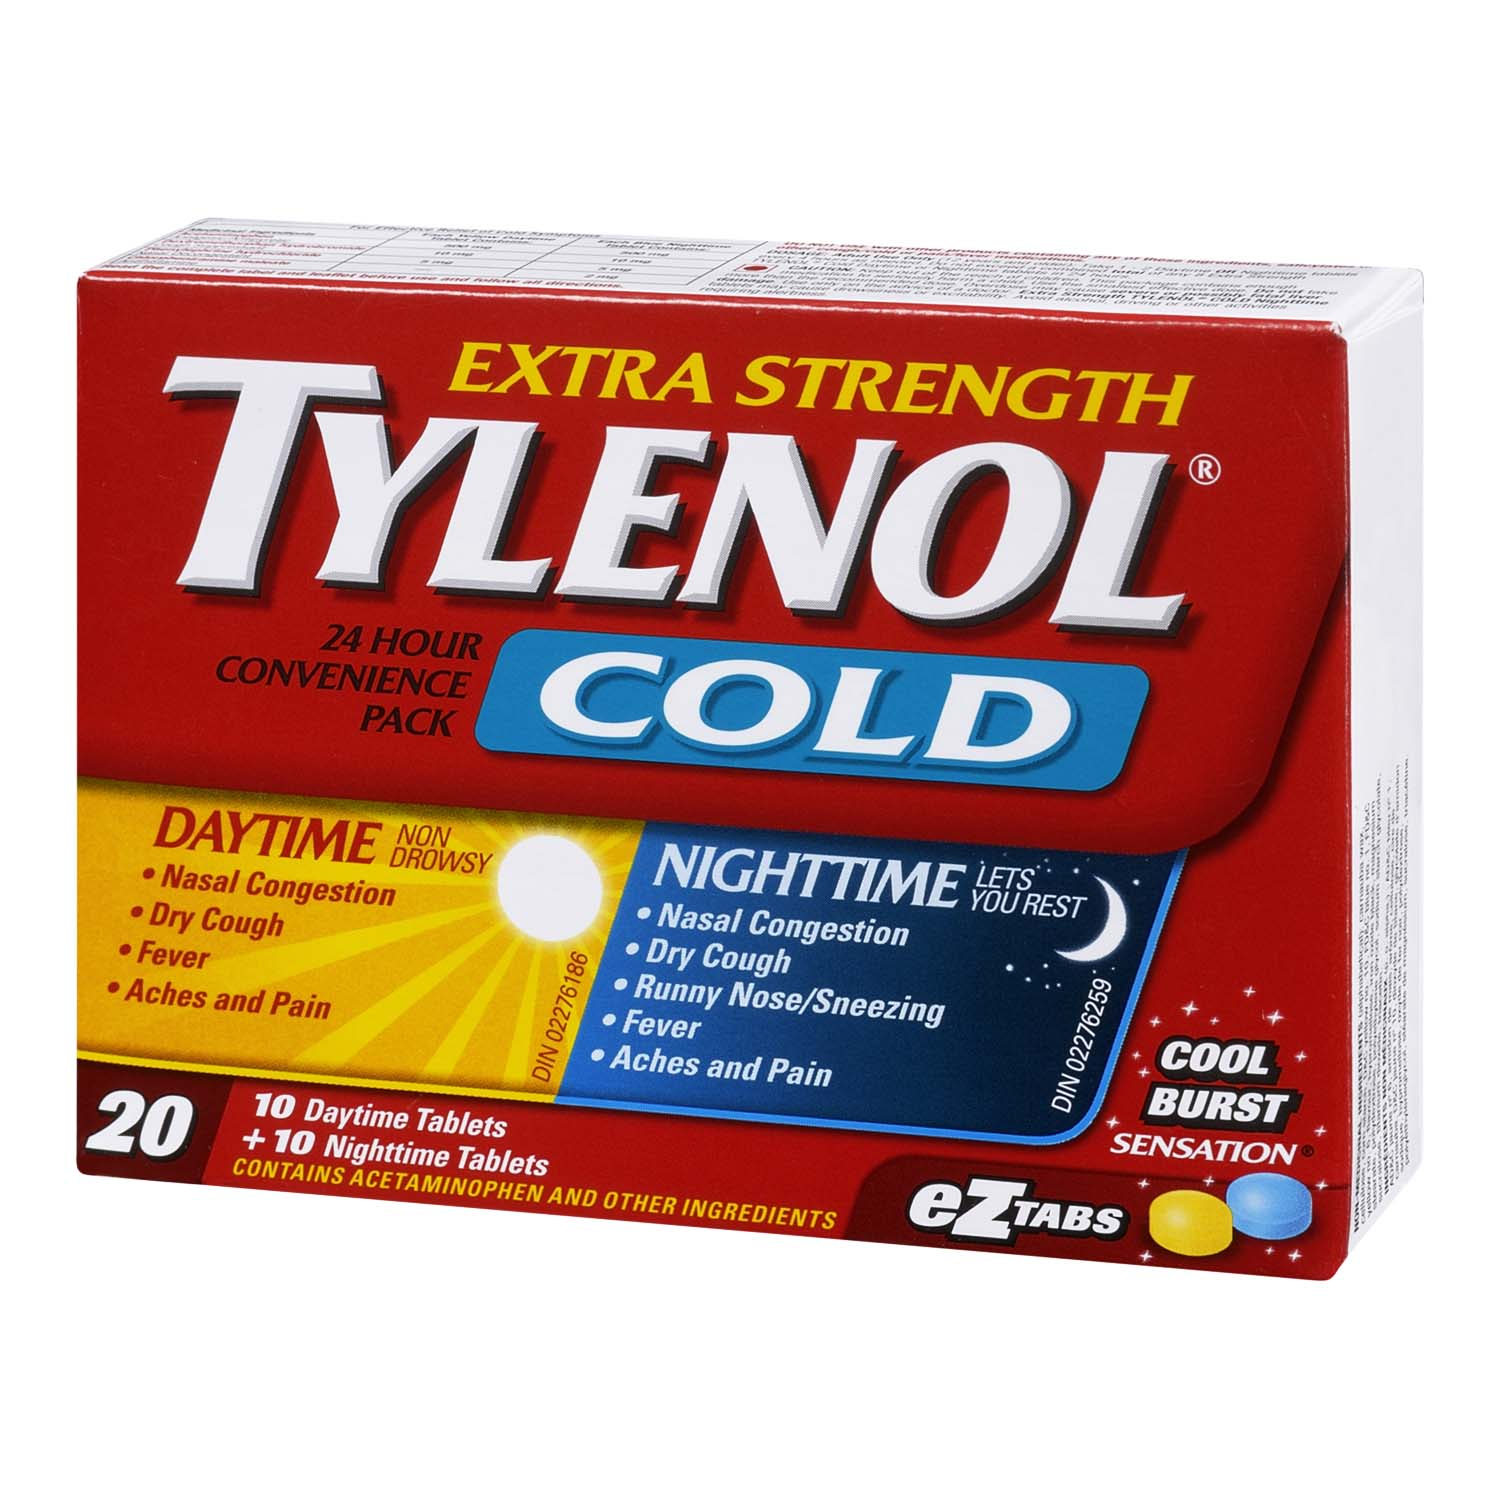 Tylenol Cold 24 Hours Convenience Pack Extra Strength EZTabs